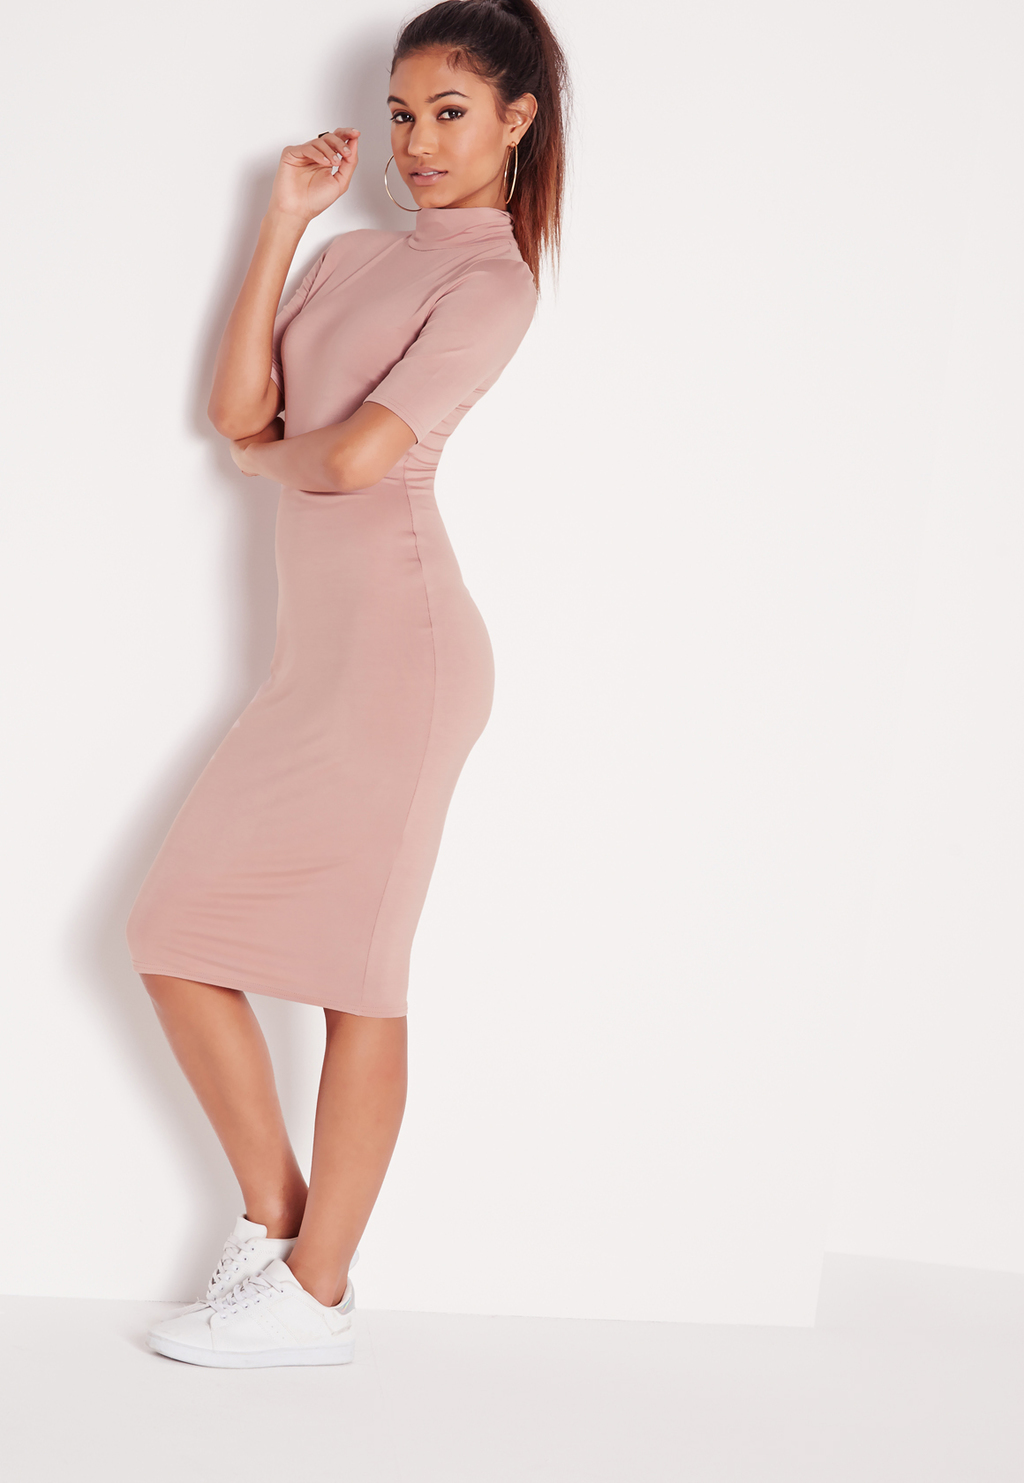 High Neck Short Sleeve Bodycon Dress Dusky Pink, Pink - length: below the knee; fit: tight; pattern: plain; neckline: high neck; style: bodycon; hip detail: fitted at hip; predominant colour: blush; occasions: evening; fibres: polyester/polyamide - stretch; sleeve length: half sleeve; sleeve style: standard; texture group: jersey - clingy; pattern type: fabric; season: s/s 2016; wardrobe: event